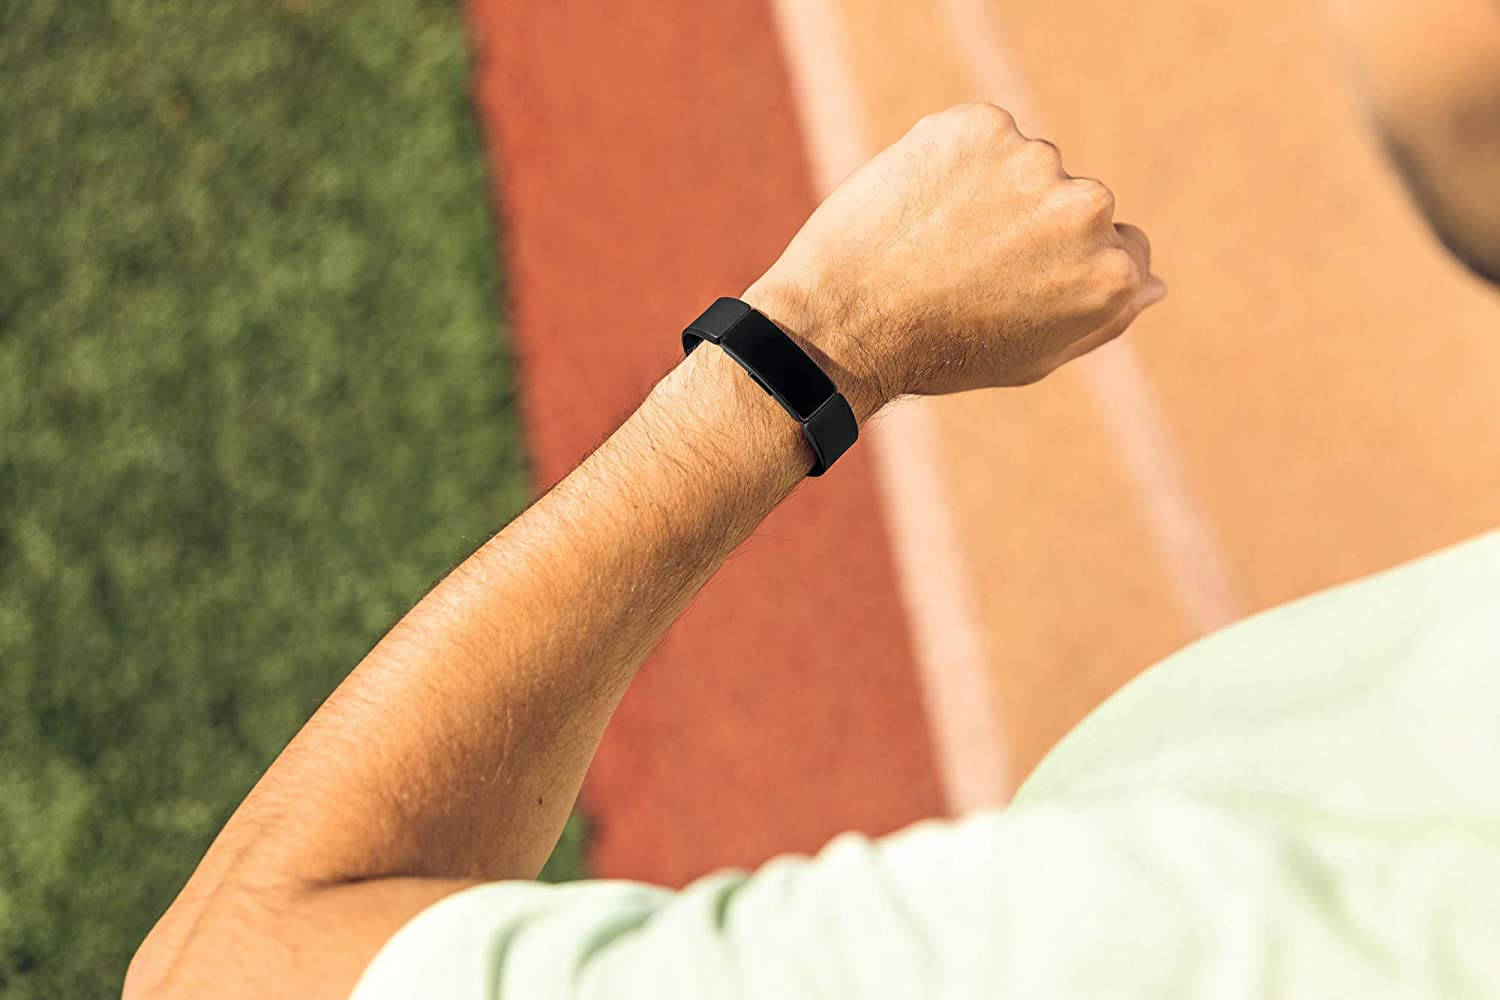 best fitbit band under 2000, best fitbit charge 3, best women's fitness watch 2018, best heart rate monitor band, fitness band without phone, best fitness band in india 2018 under 5000, ayaz hashmi official, Best Fitbit In इंडिया,  Which good would you have for people,